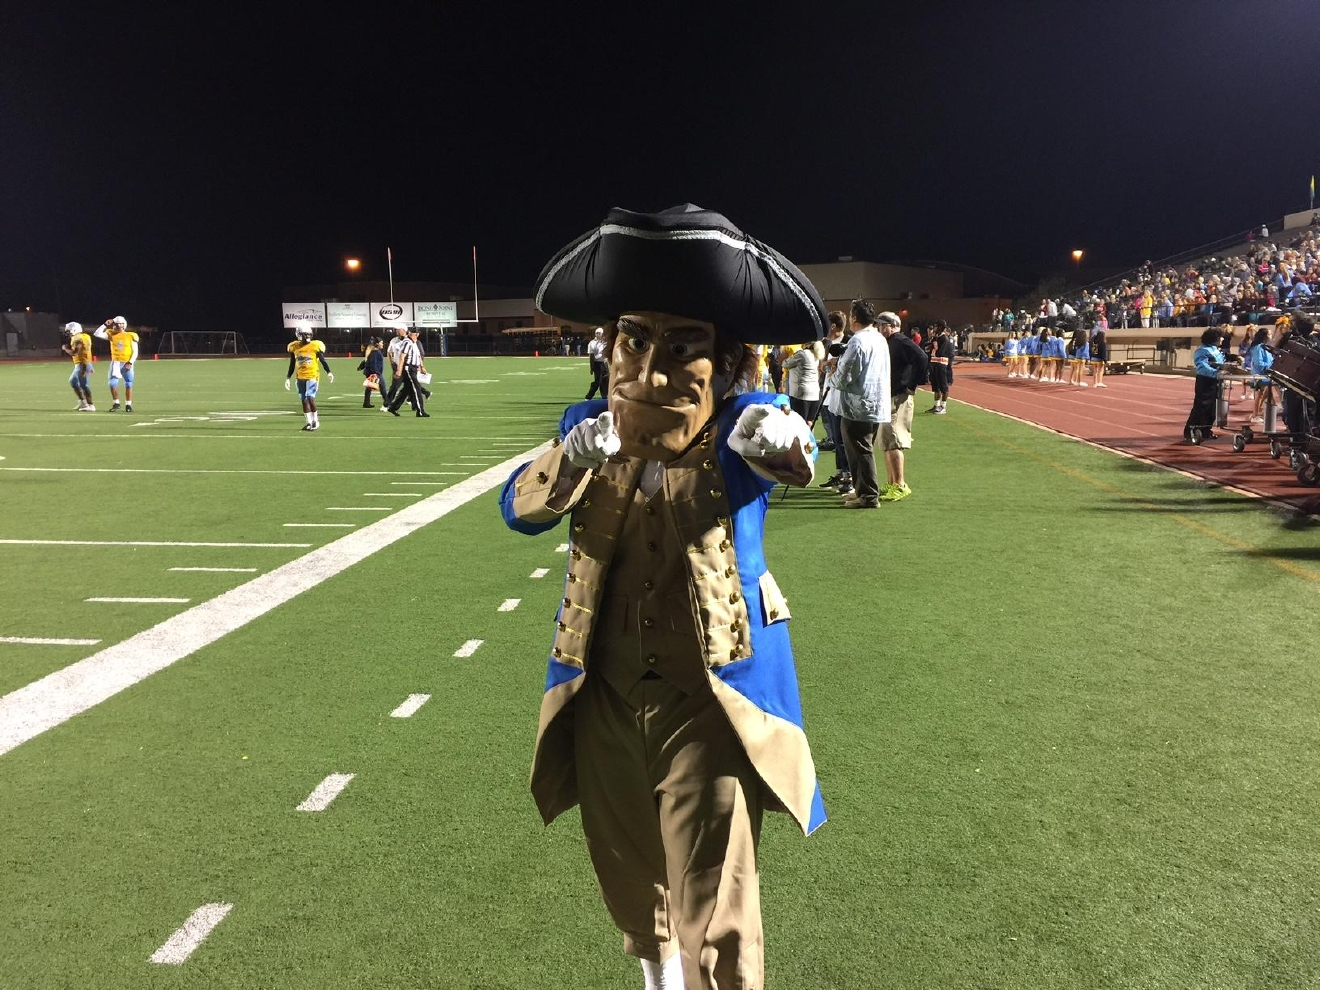 The Putnam City West High School mascot at the game against Choctaw on Friday, Nov. 4, 2016. (Scott Noland / KOKH)